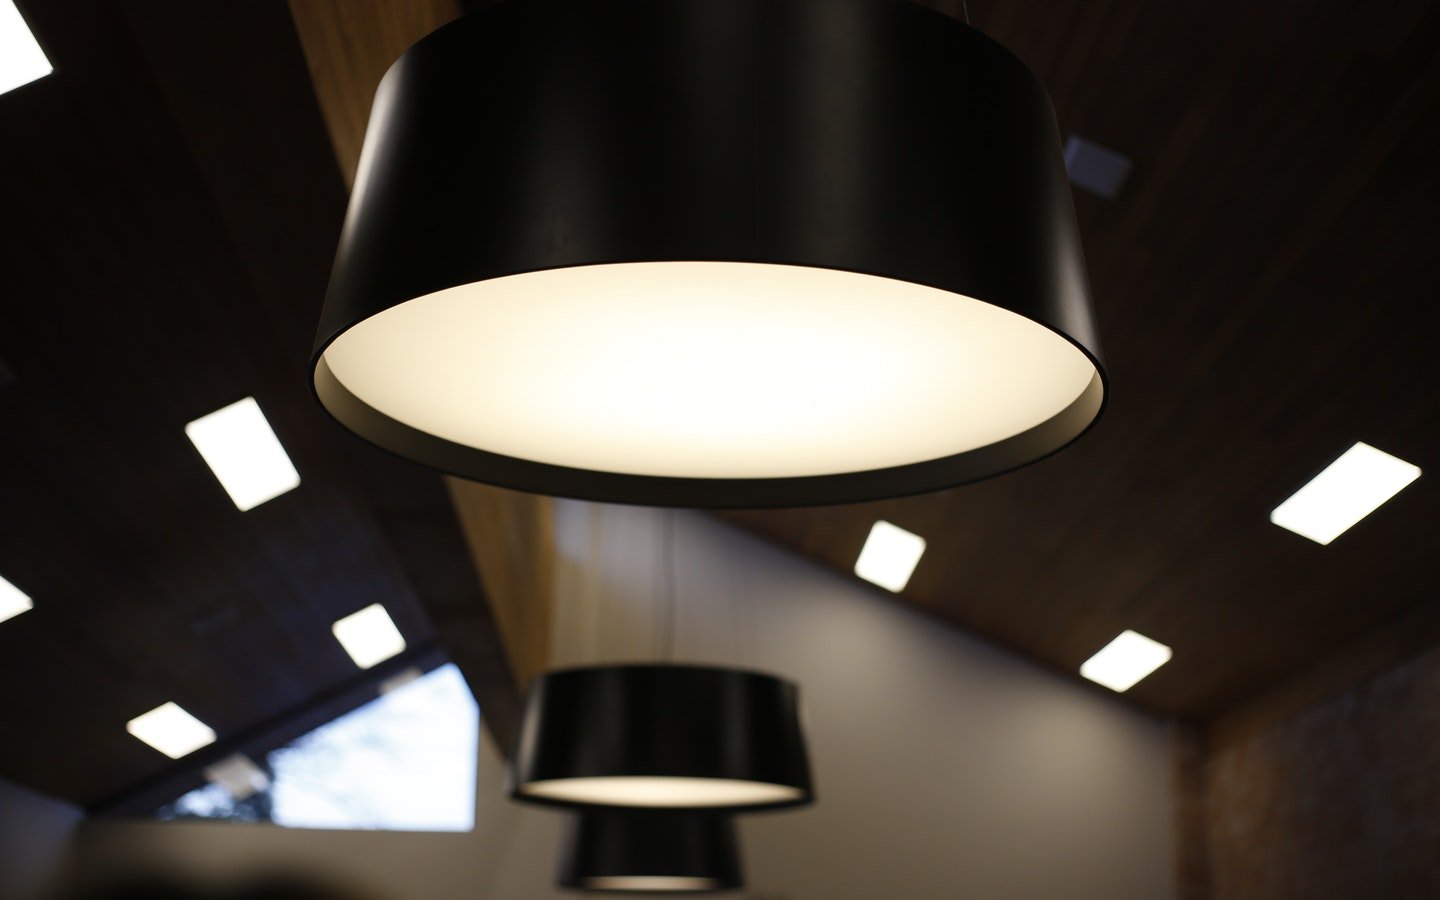 One of the home lighting tips include choosing the right shade of light to set the mood of a home